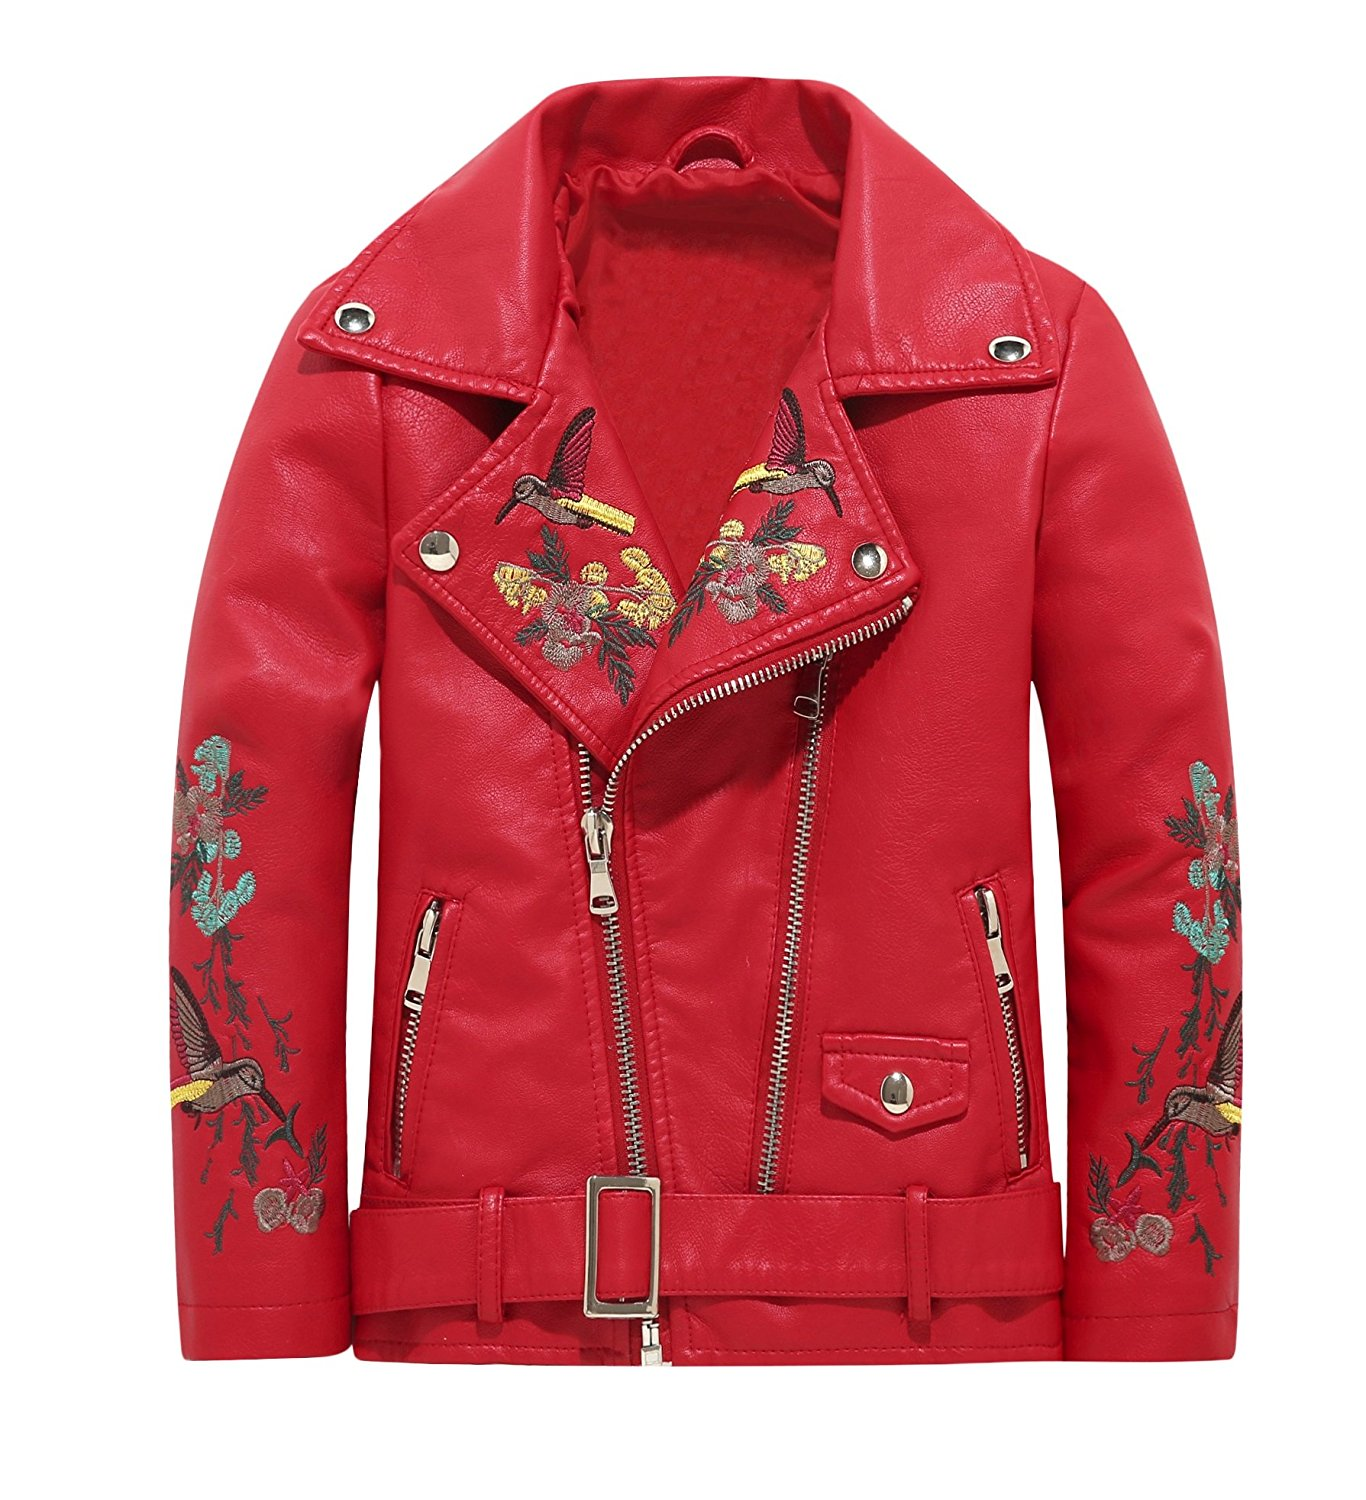 4b6c1b388 Cheap Girls Leather Jacket, find Girls Leather Jacket deals on line ...